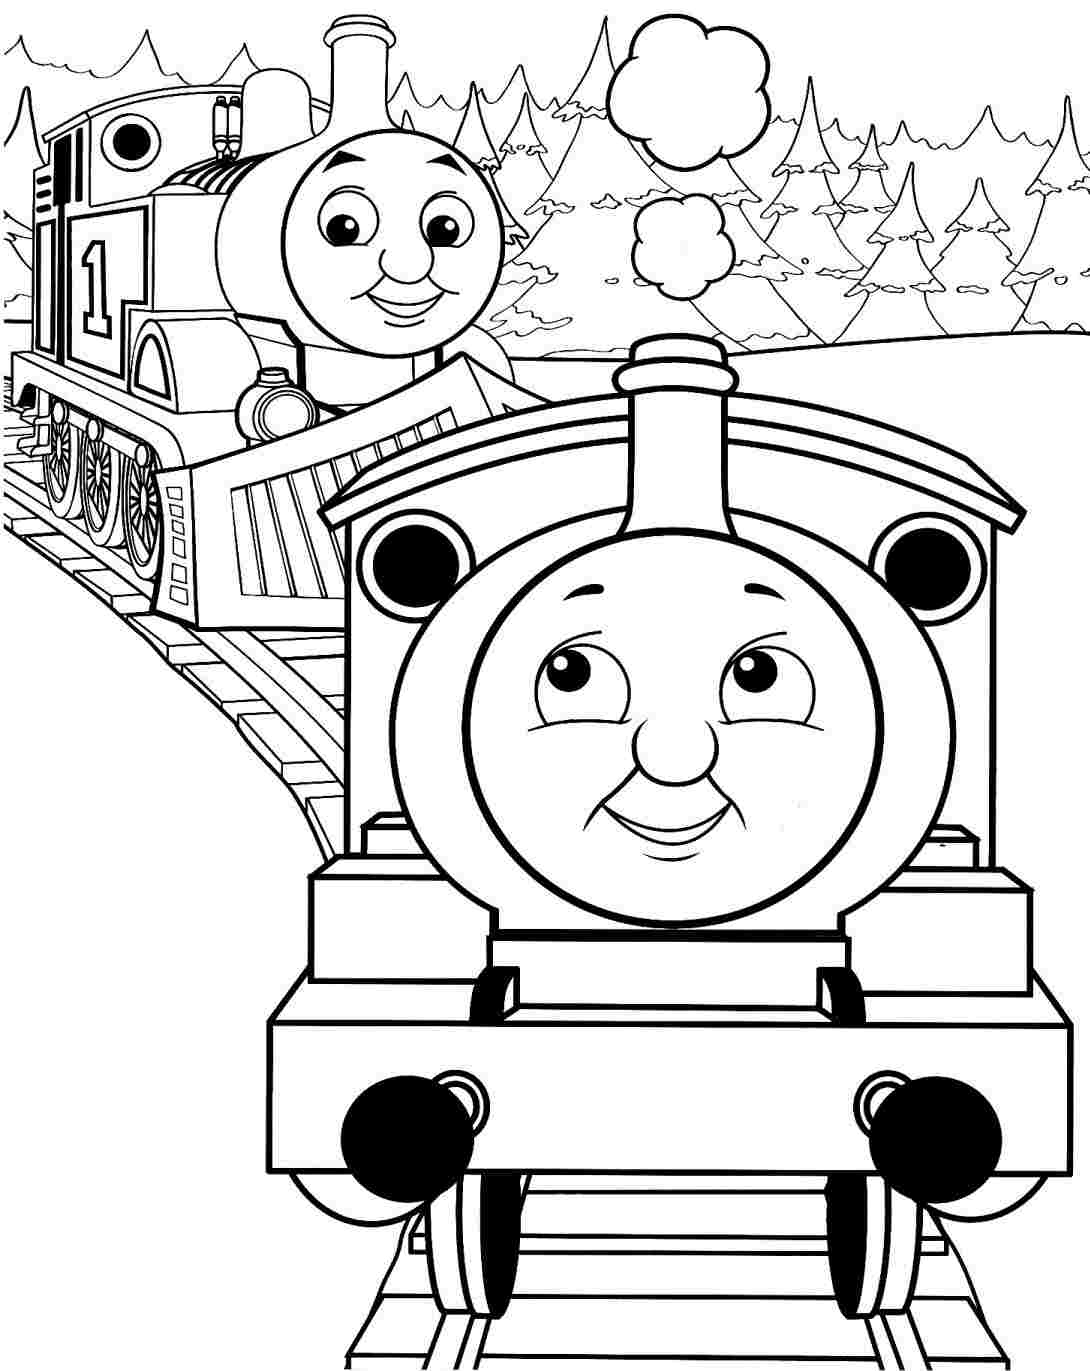 Free Thomas And Friends Coloring Pages At Getdrawings Com